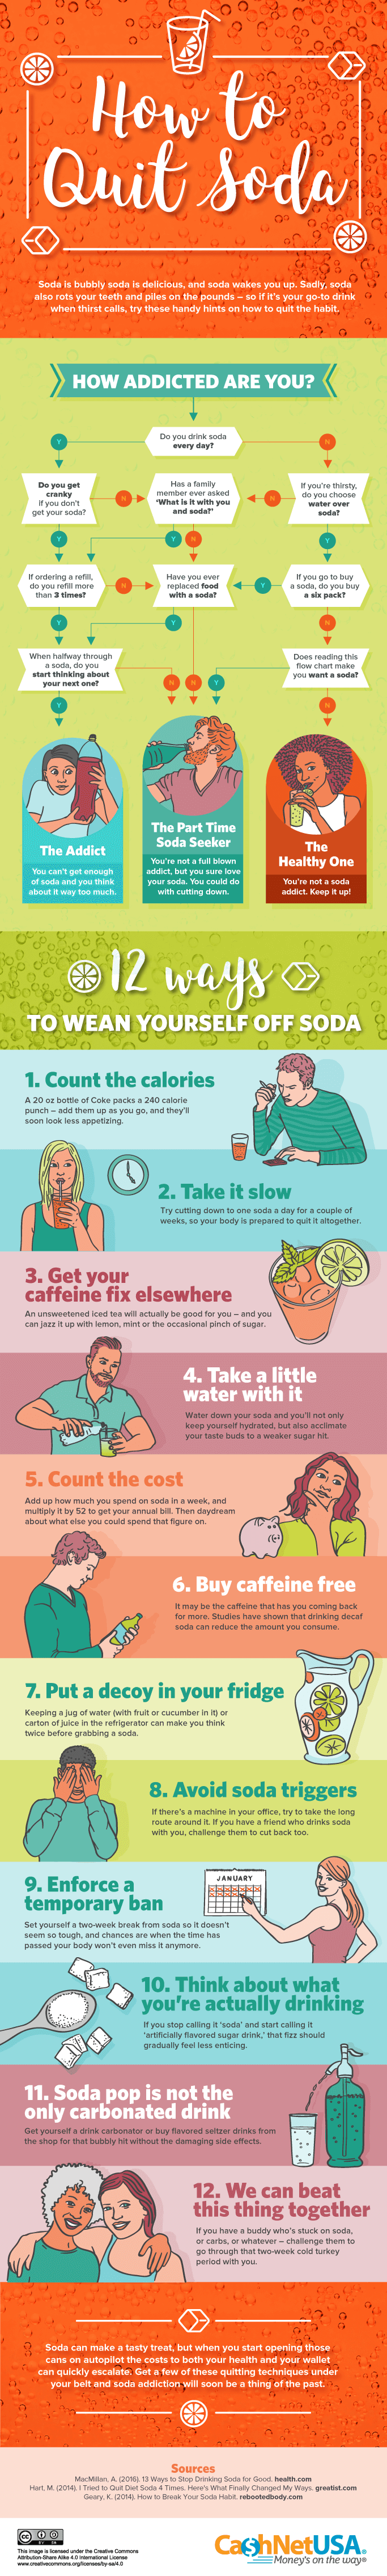 here's how to quit soda through 12 ways to wean